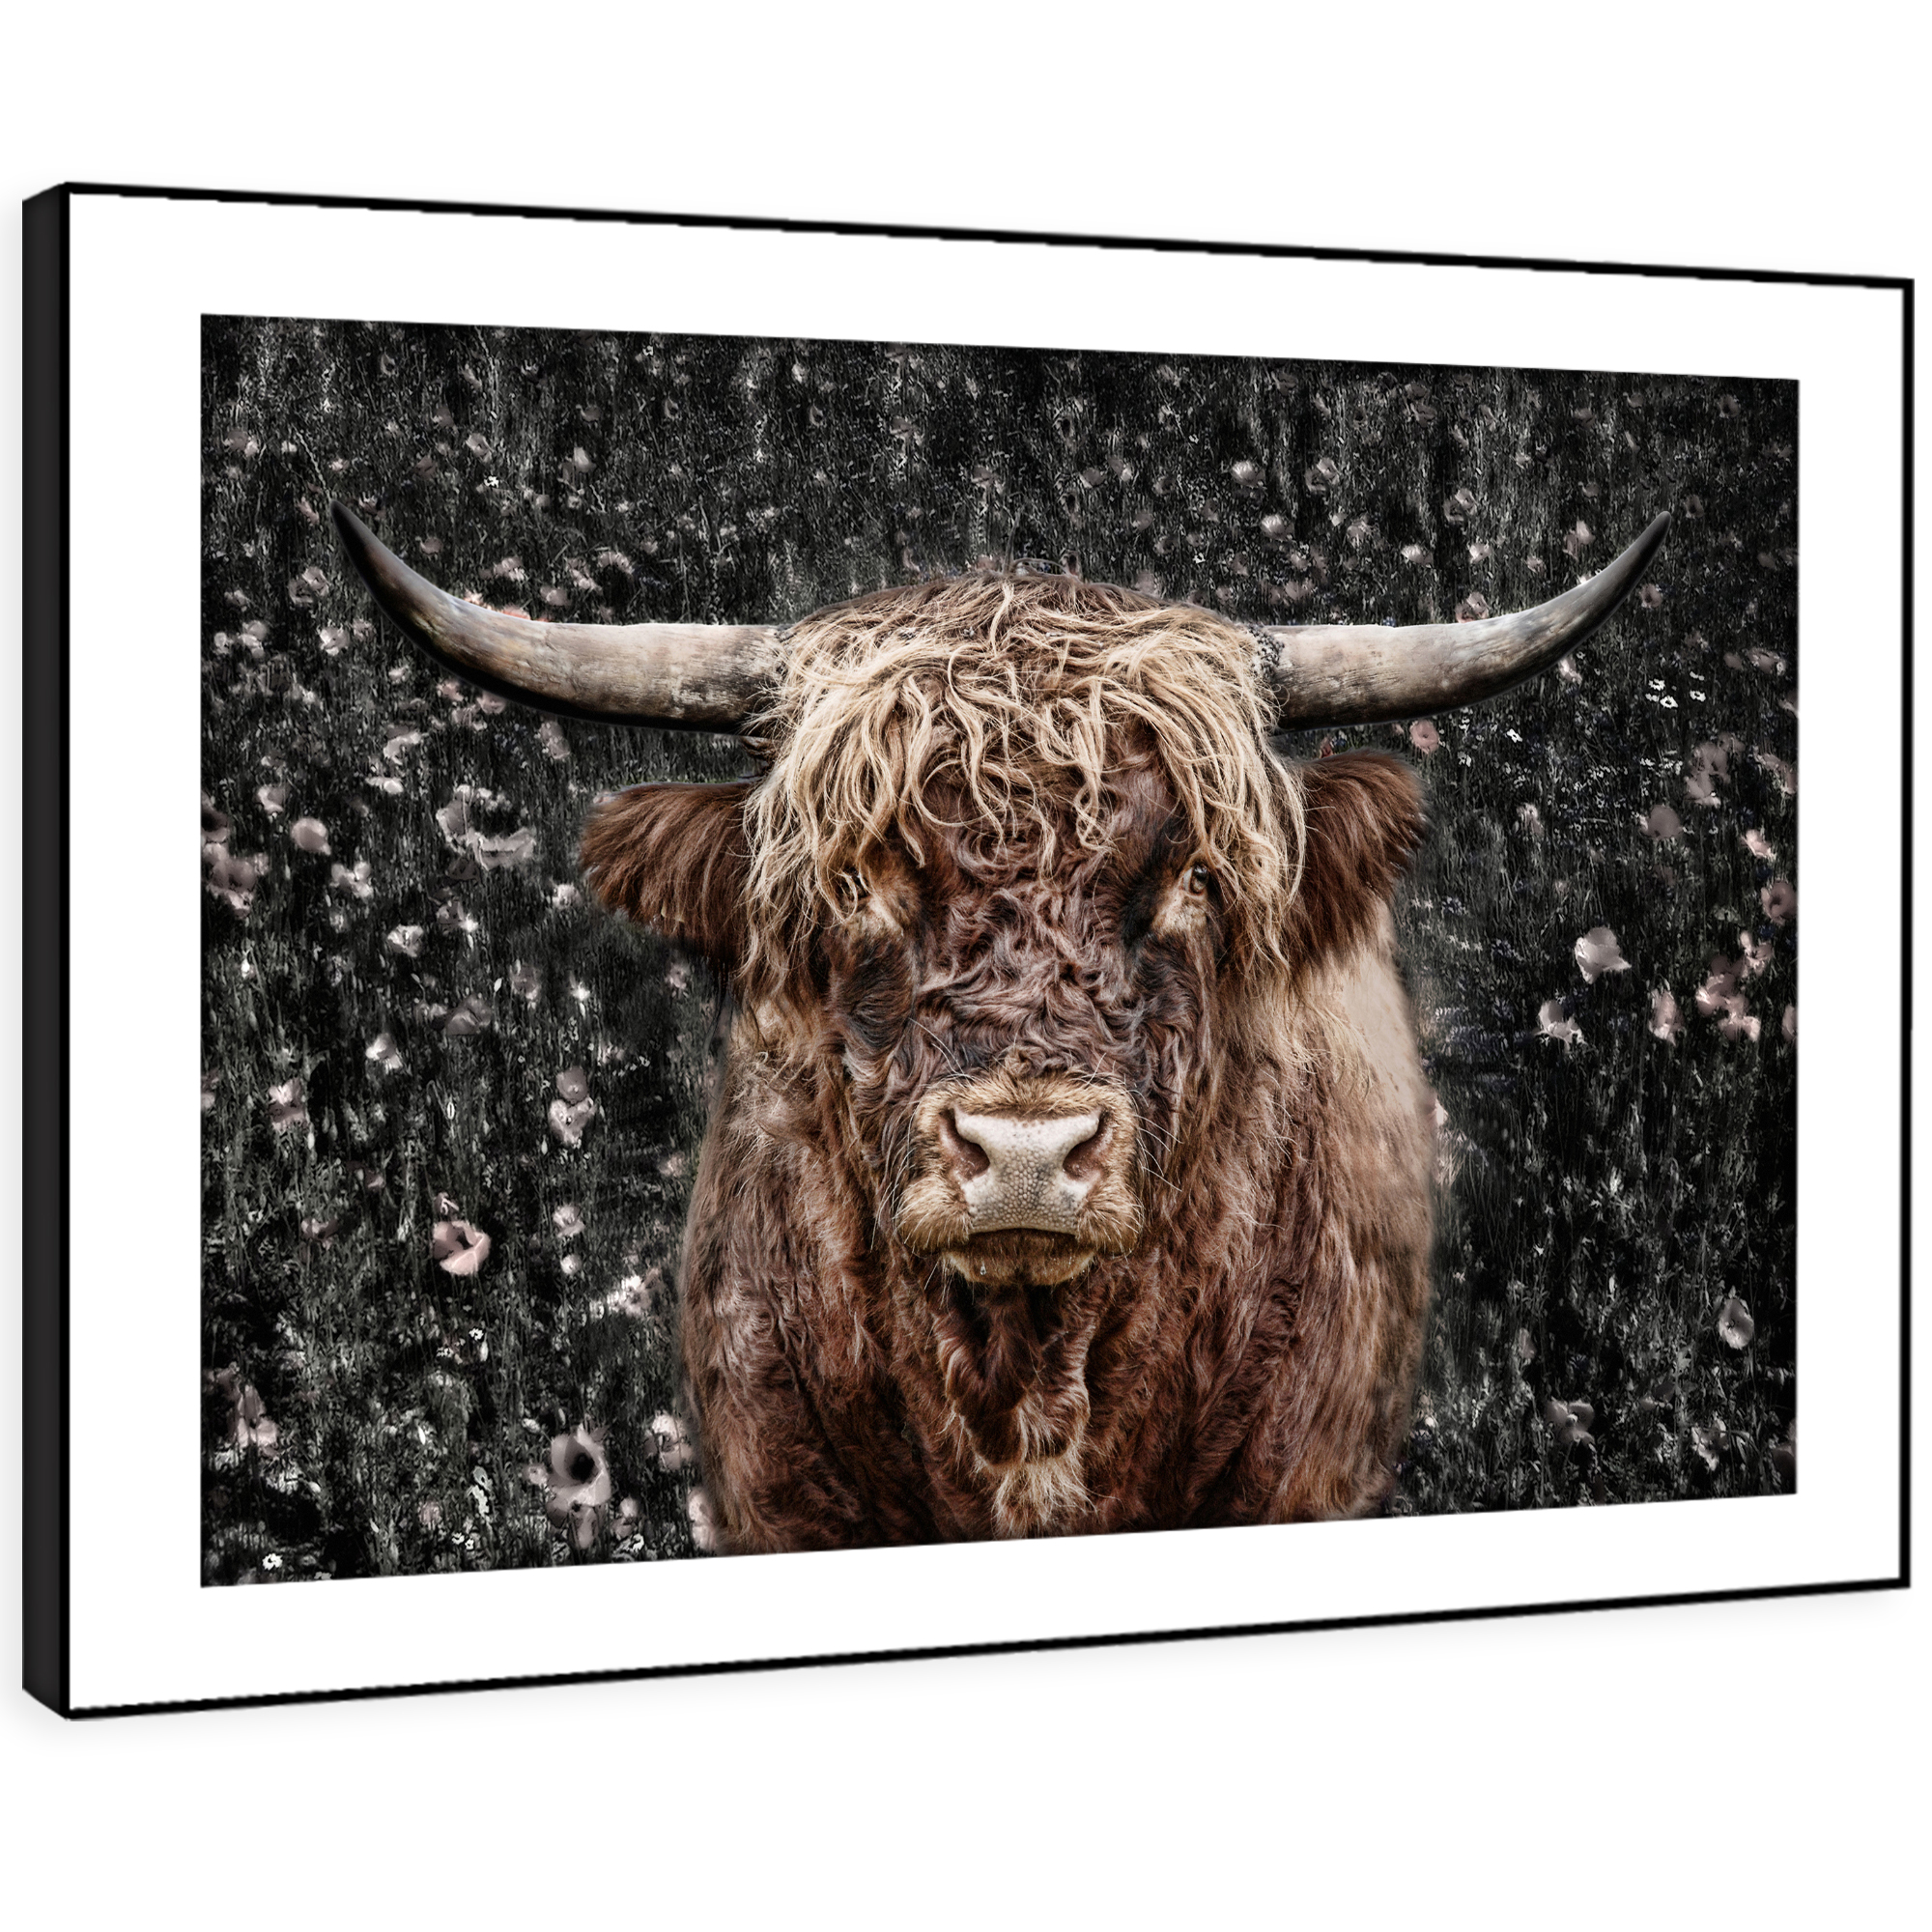 A386 braun  Yak Flower Forest Funky Animal Framed Wall Art Large Picture Prints